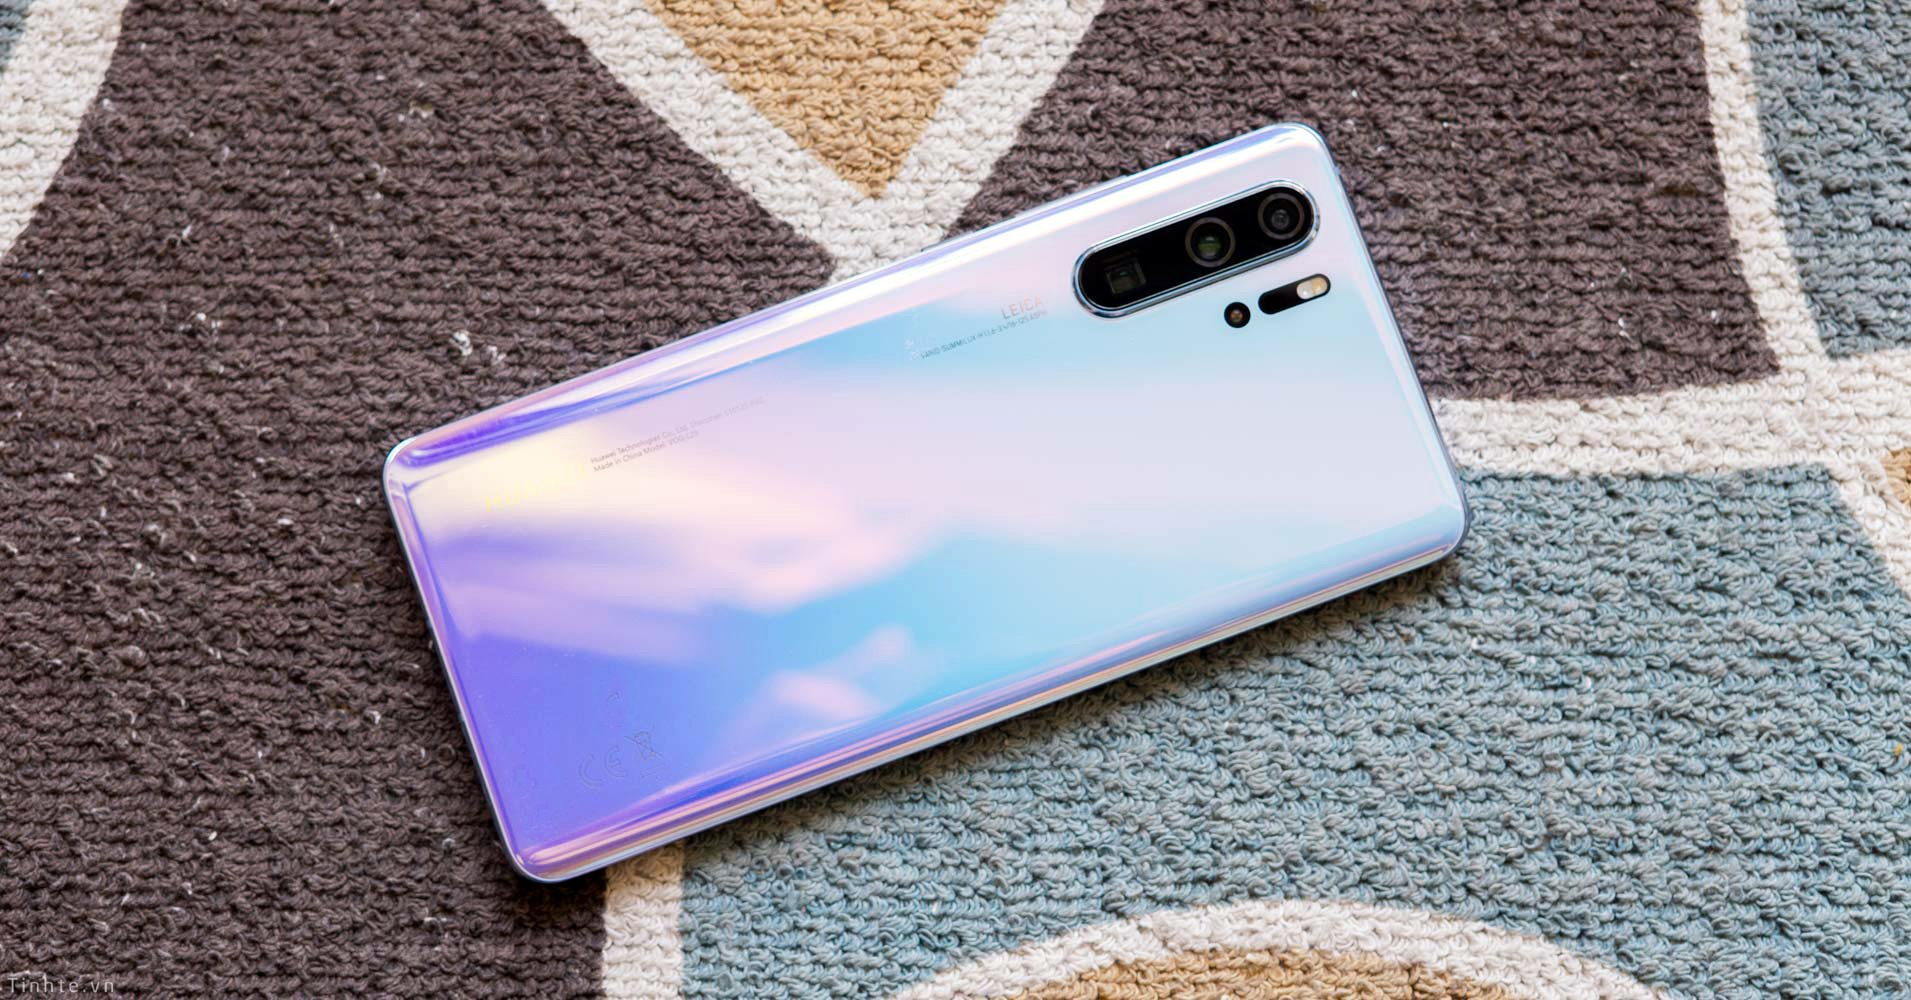 Huawei gets it wrong when placing ads on a user's lock screen